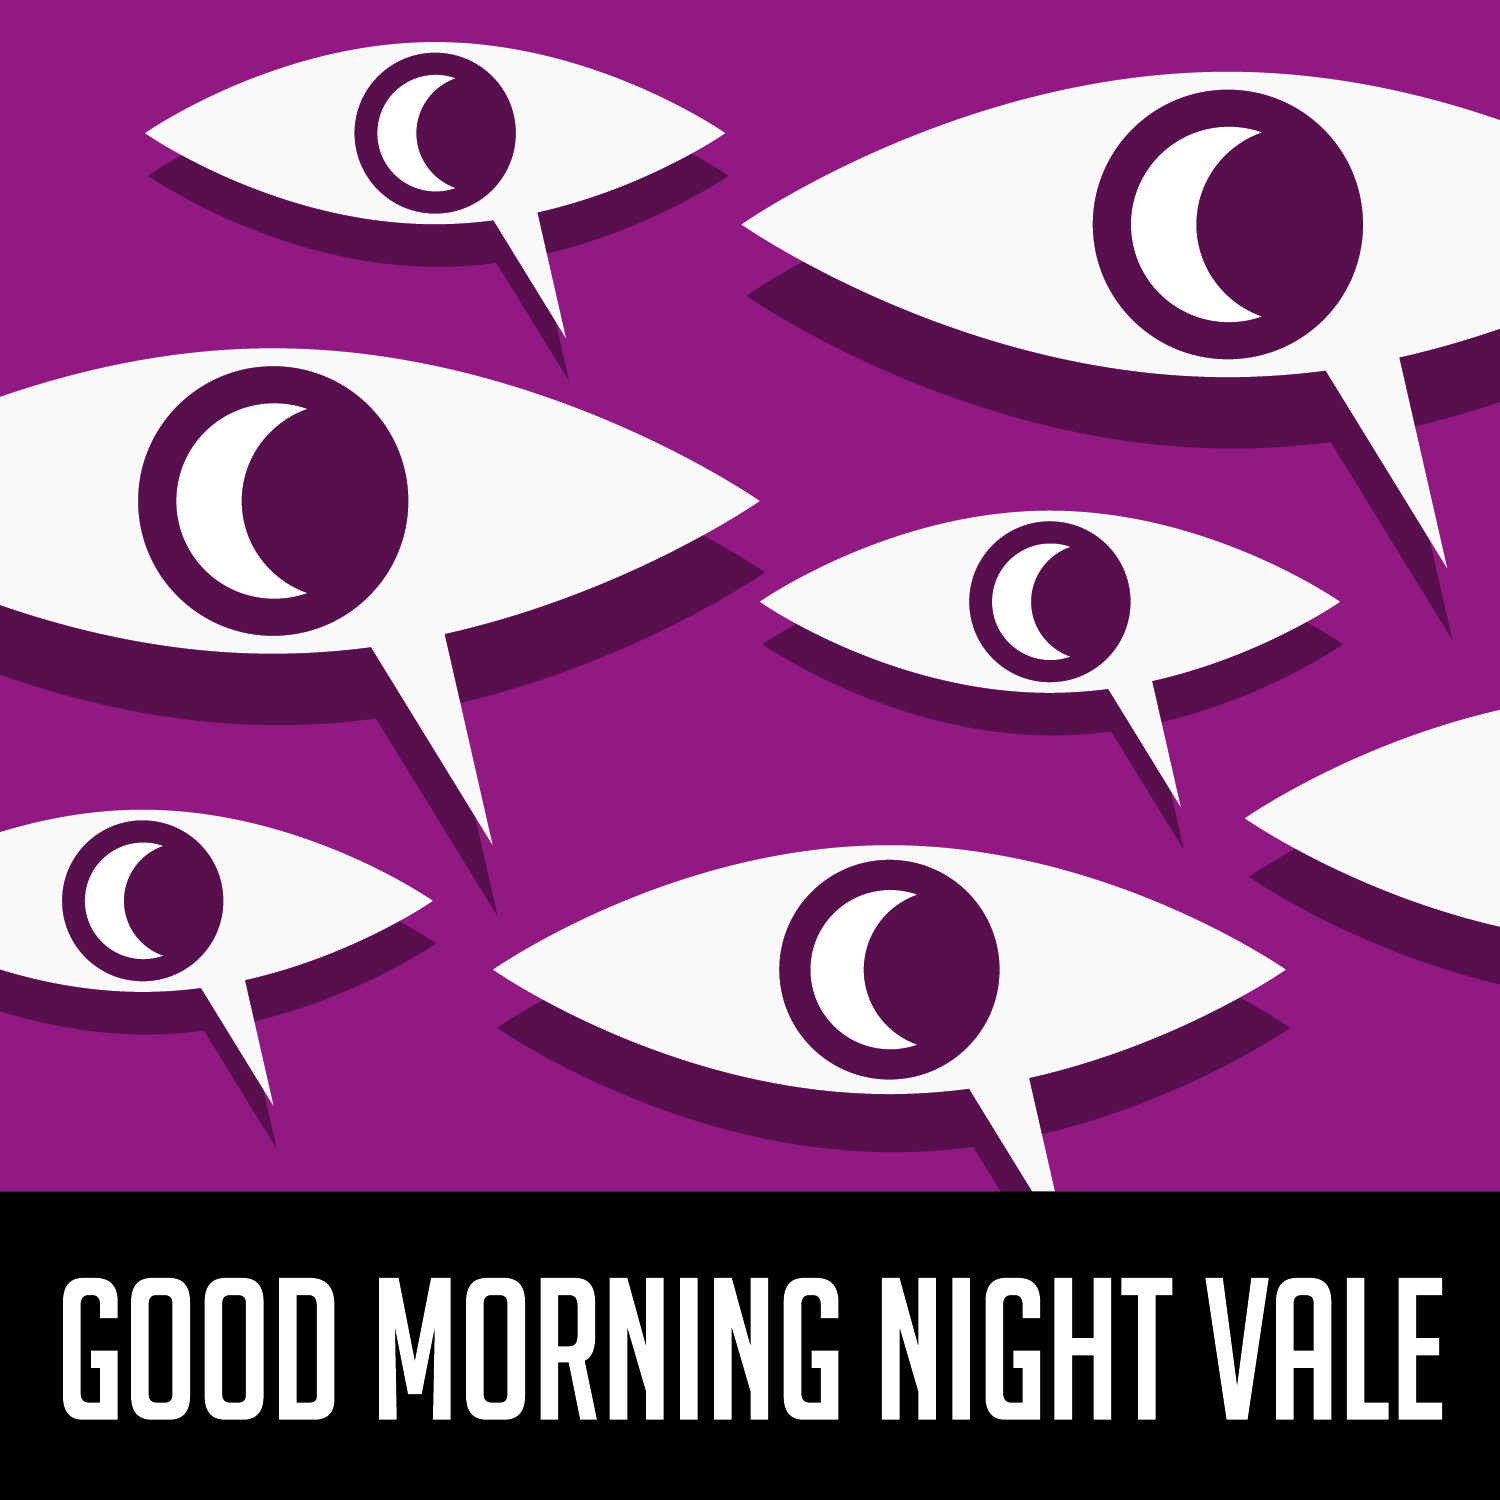 Good Morning Night Vale